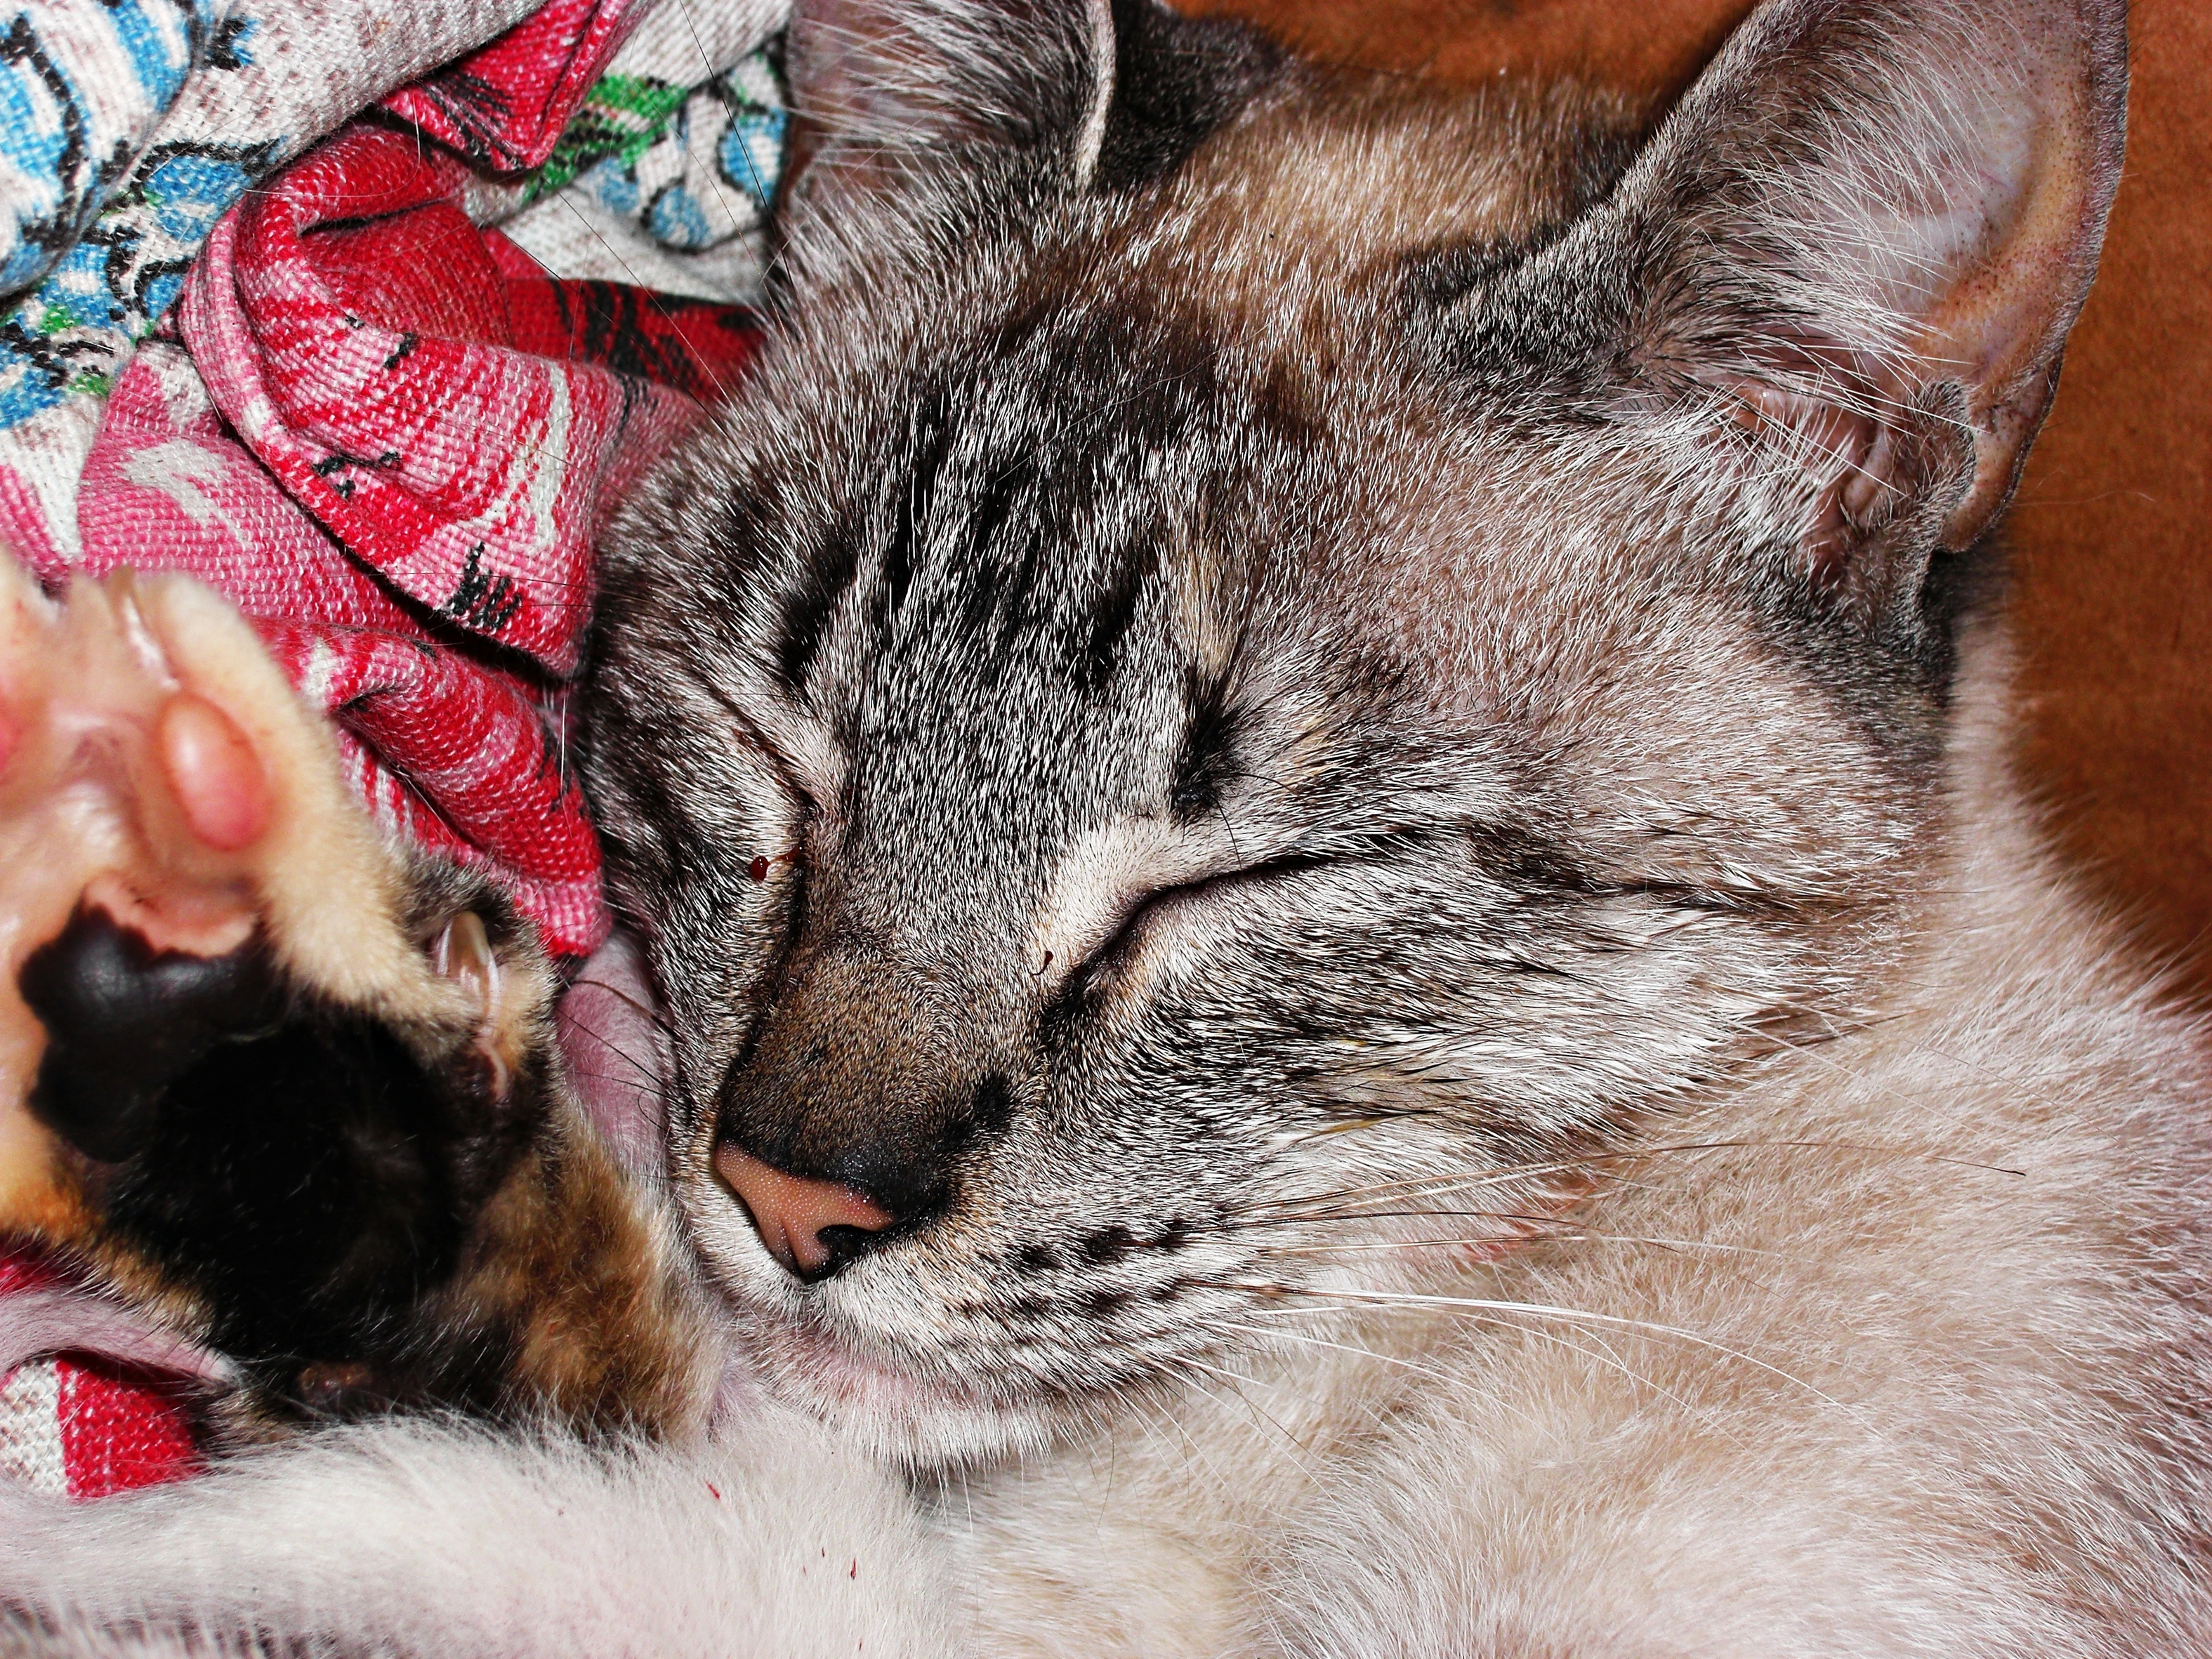 cat - gata Suzy sleep Novo Hamburgo - RS - Brasil